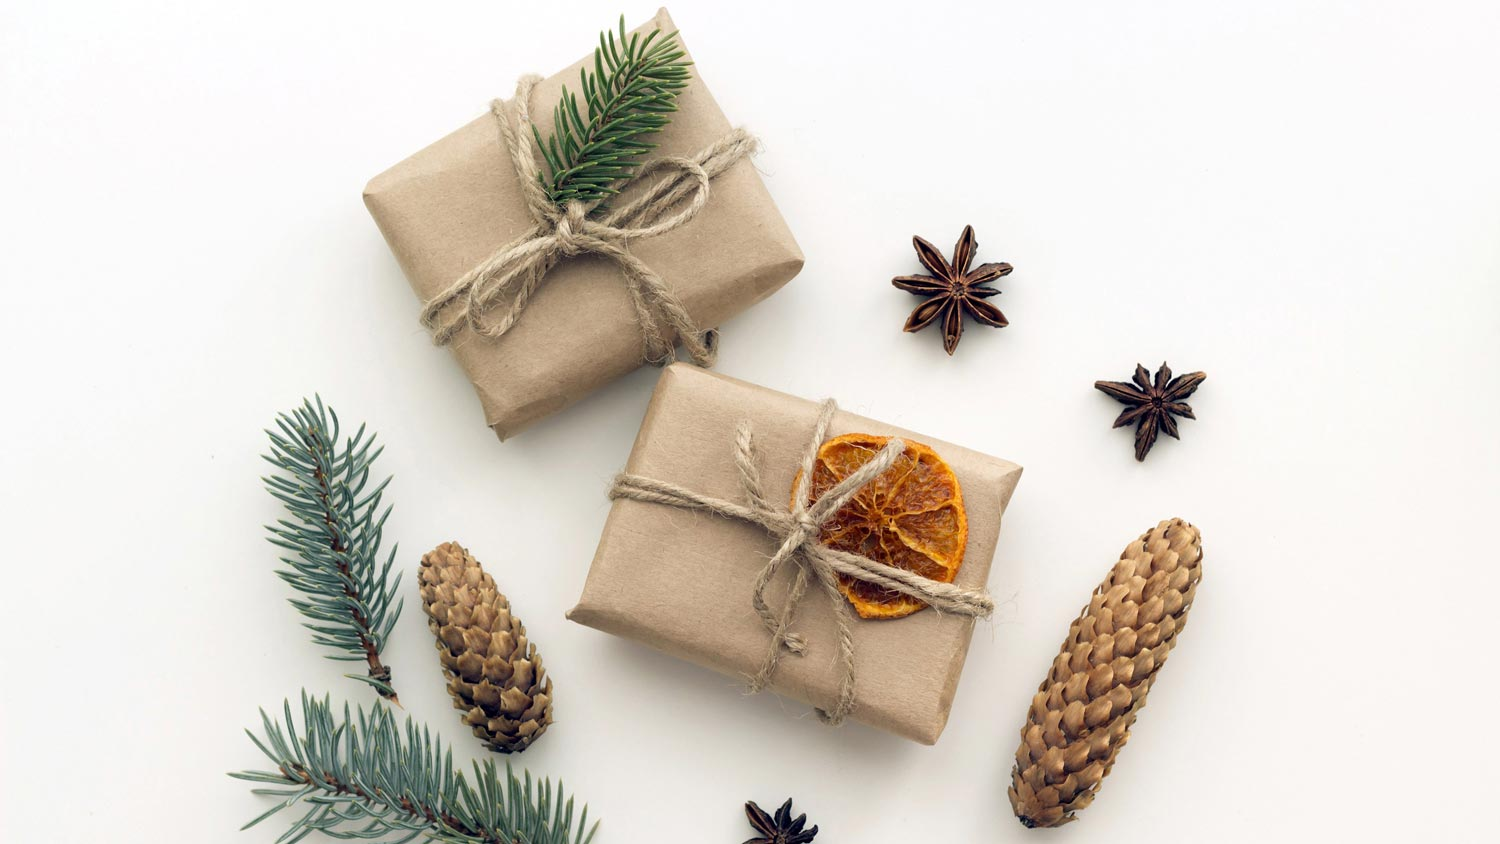 Eco Friendly Wrapping Tips - Natural Adornments - Indigenous Fair Trade Fashion Gifts